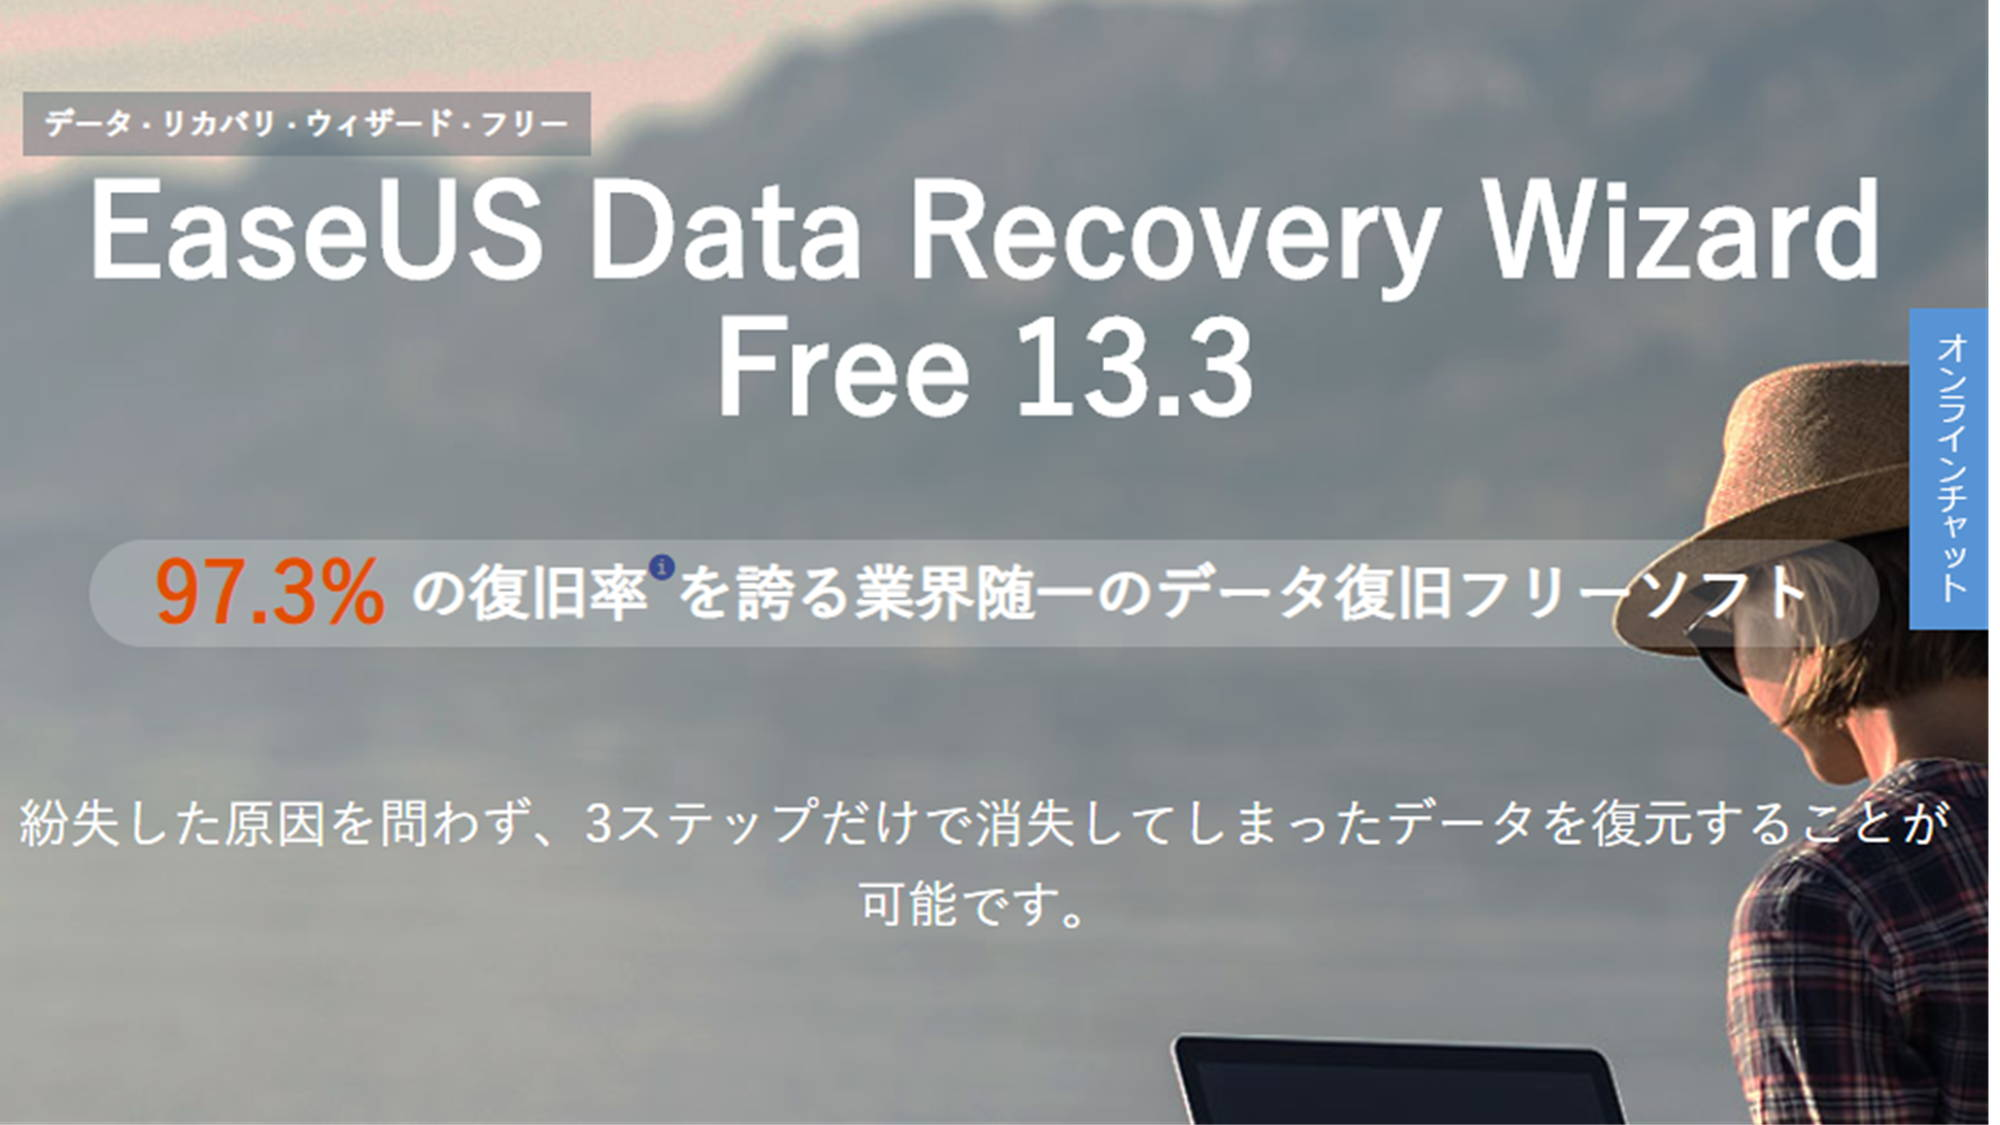 「EaseUS Data Recovery Wizard」の訴求ポイント